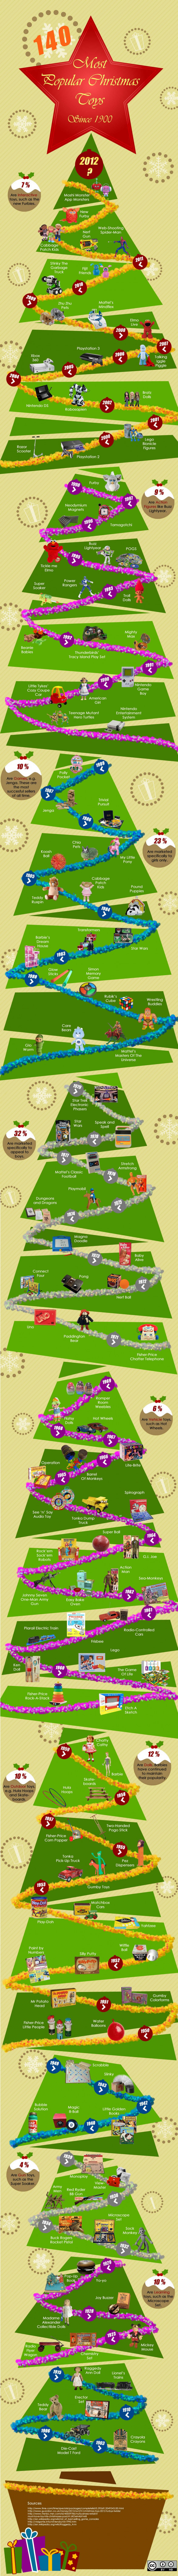 140 Most Popular Christmas Toys since 1900